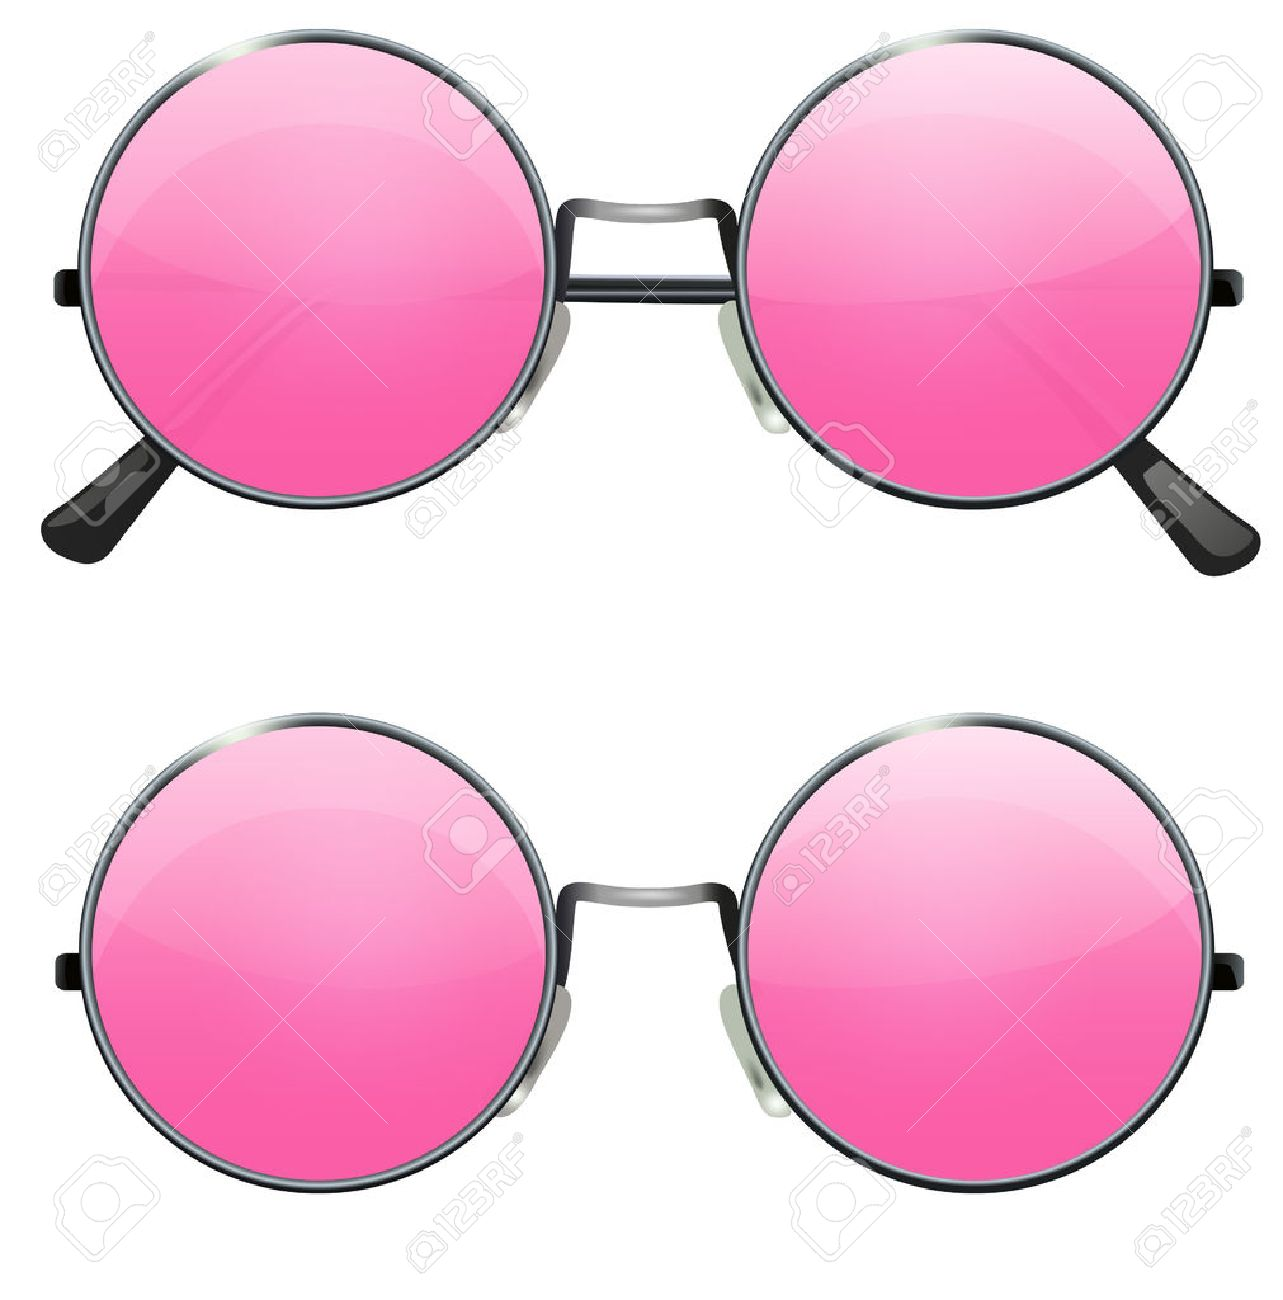 glasses with transparent pink round lenses isolated on white rh 123rf com